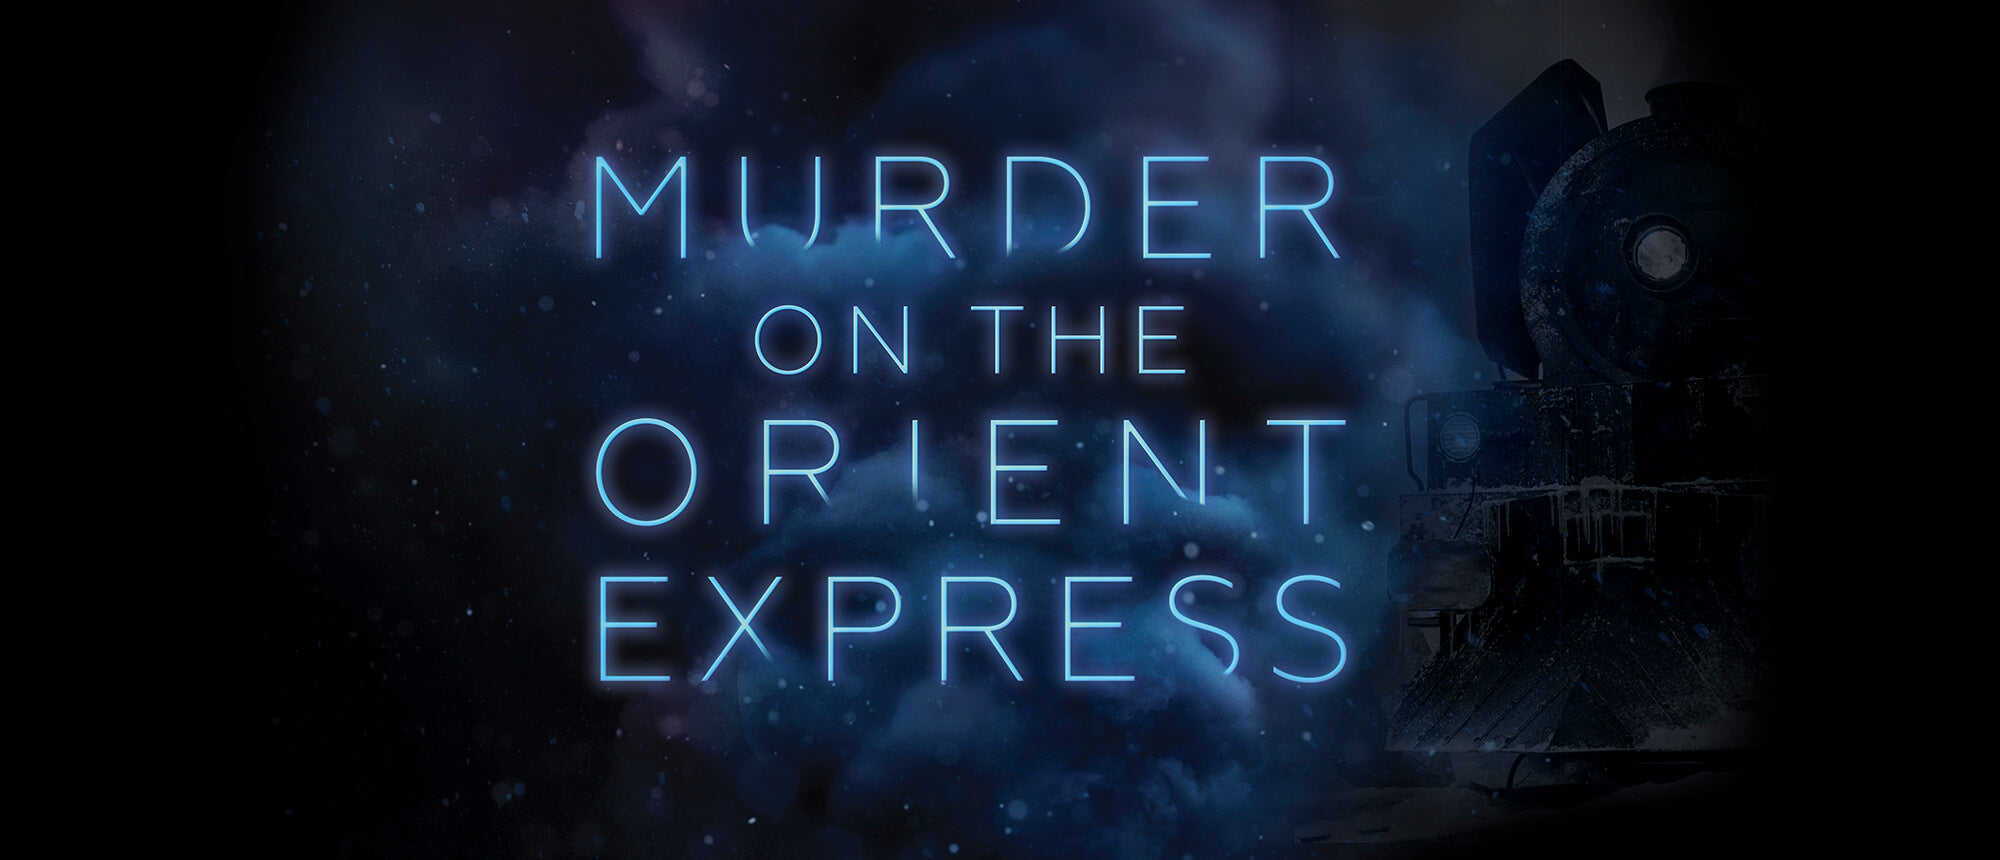 Crockett & Jones - Crockett & Jones X Murder On The Orient Express